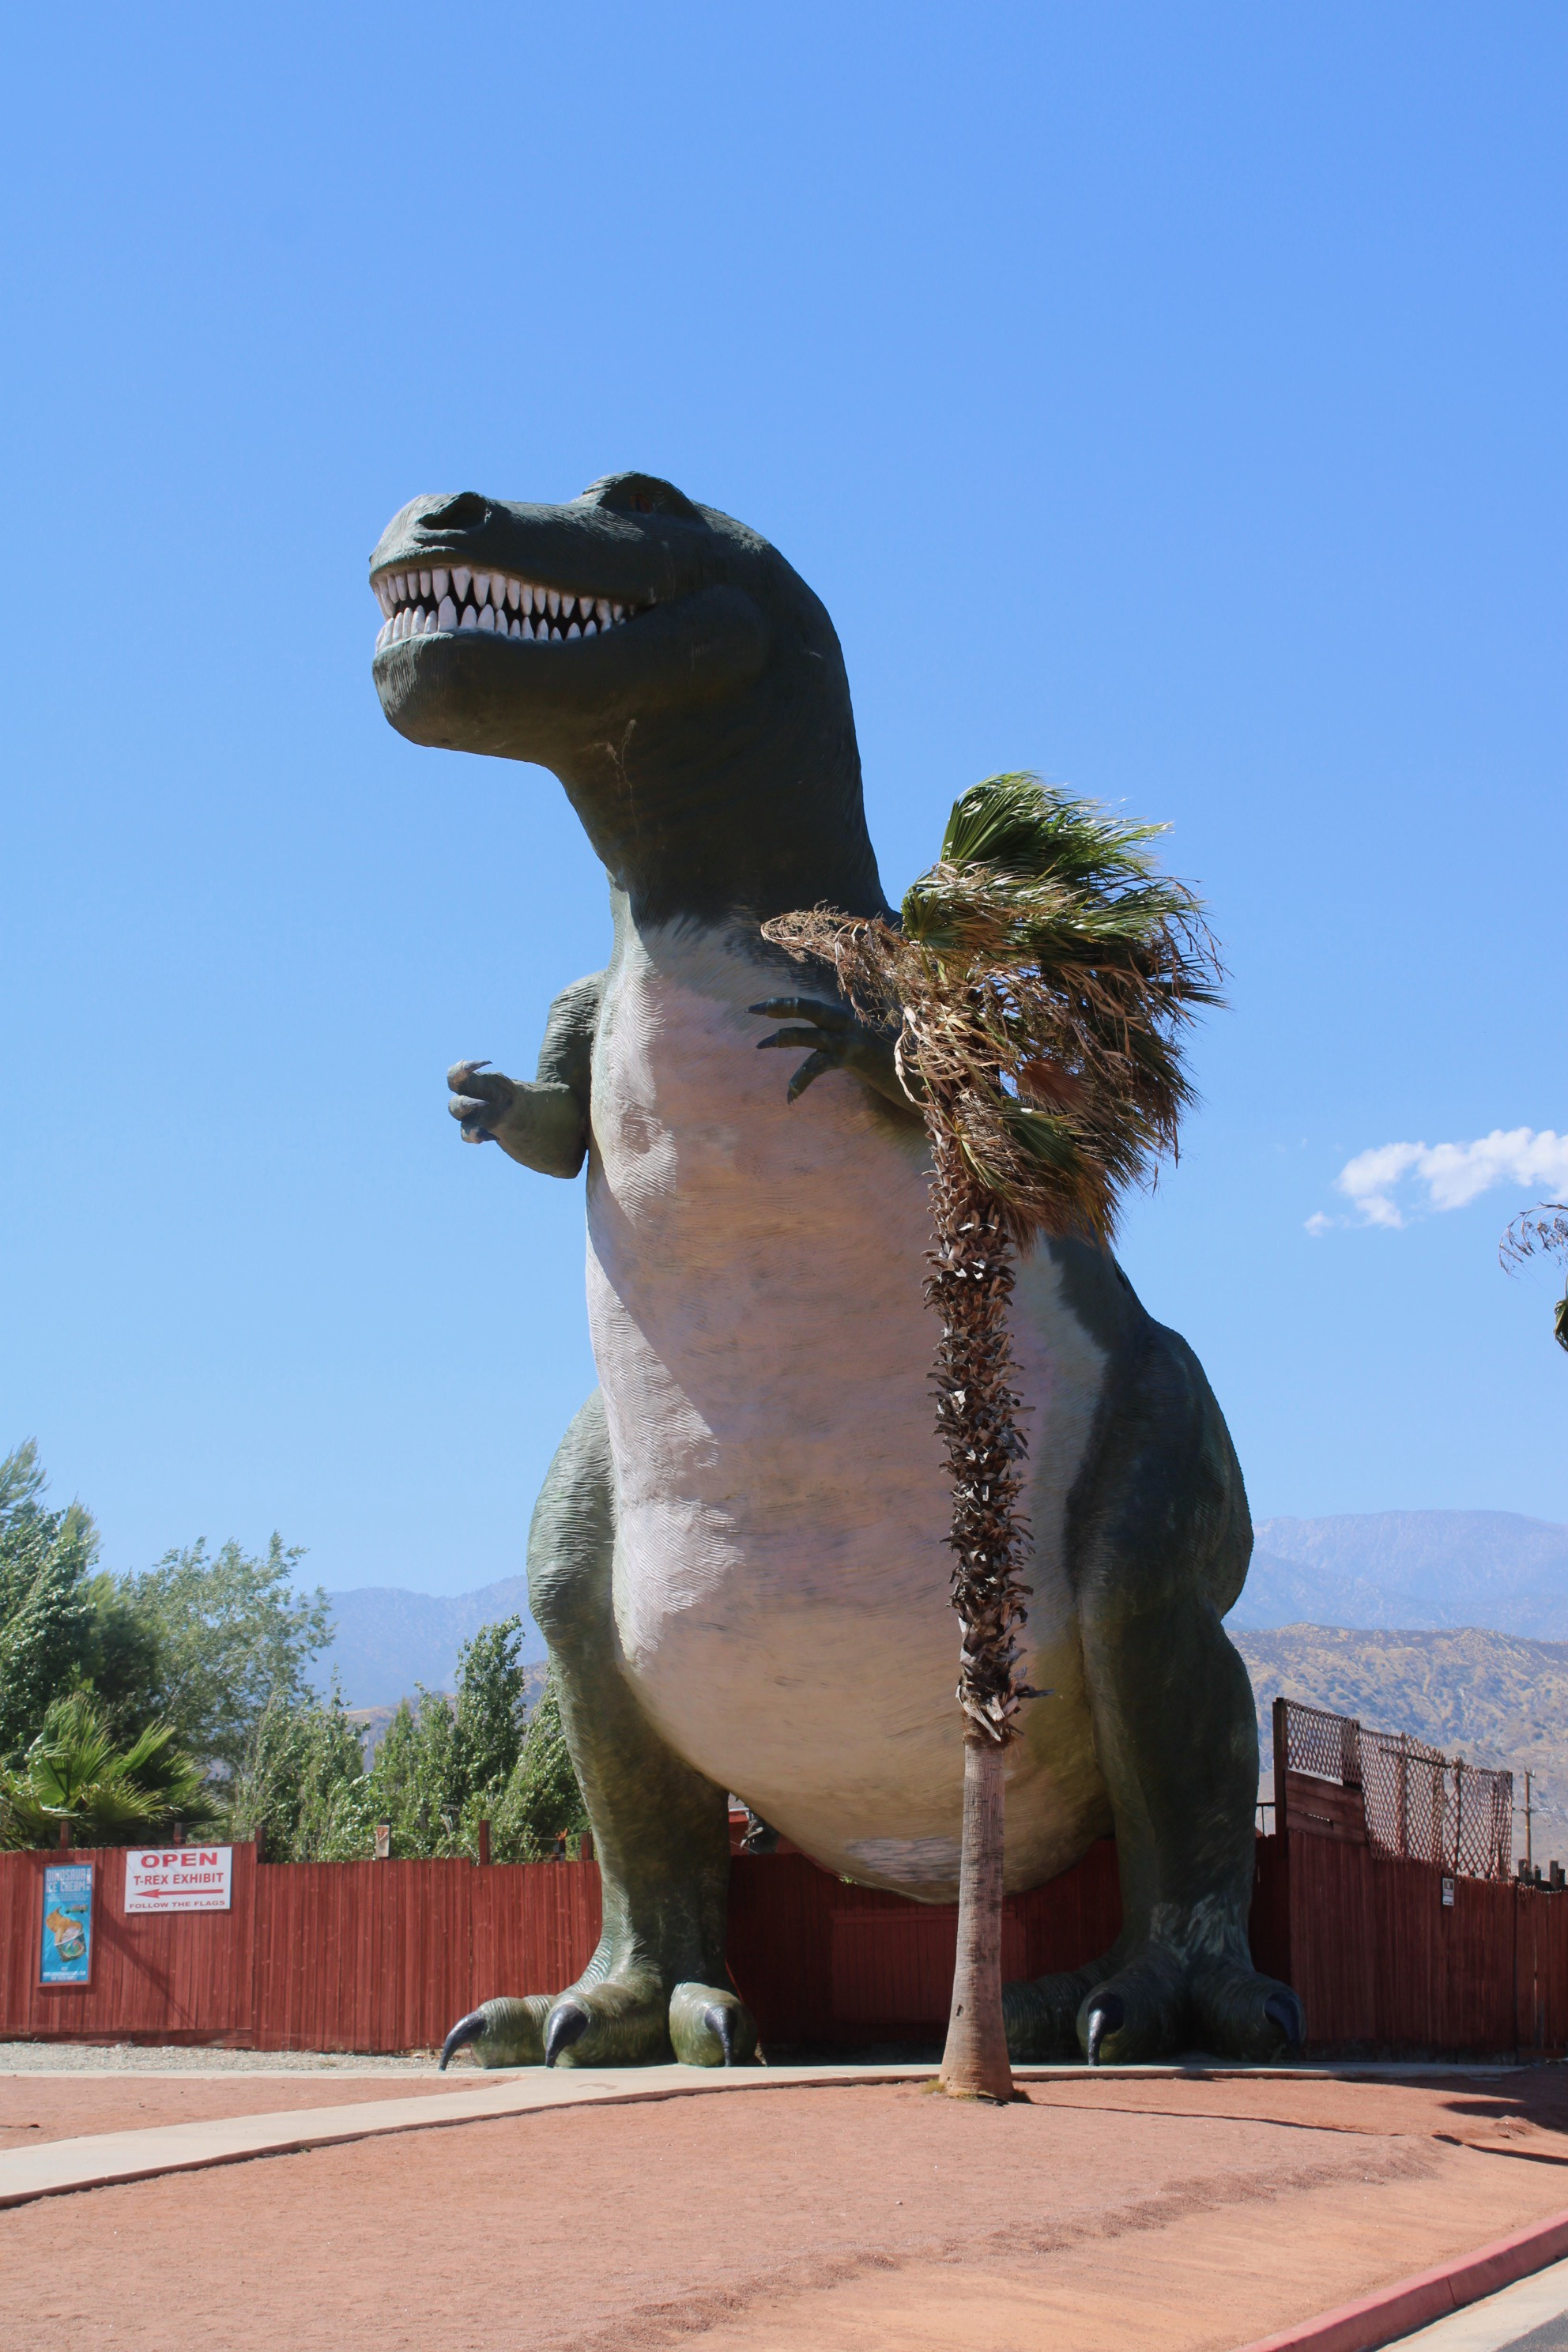 Interstate-10 giant Tyrannosaurus rex with palm tree for scale